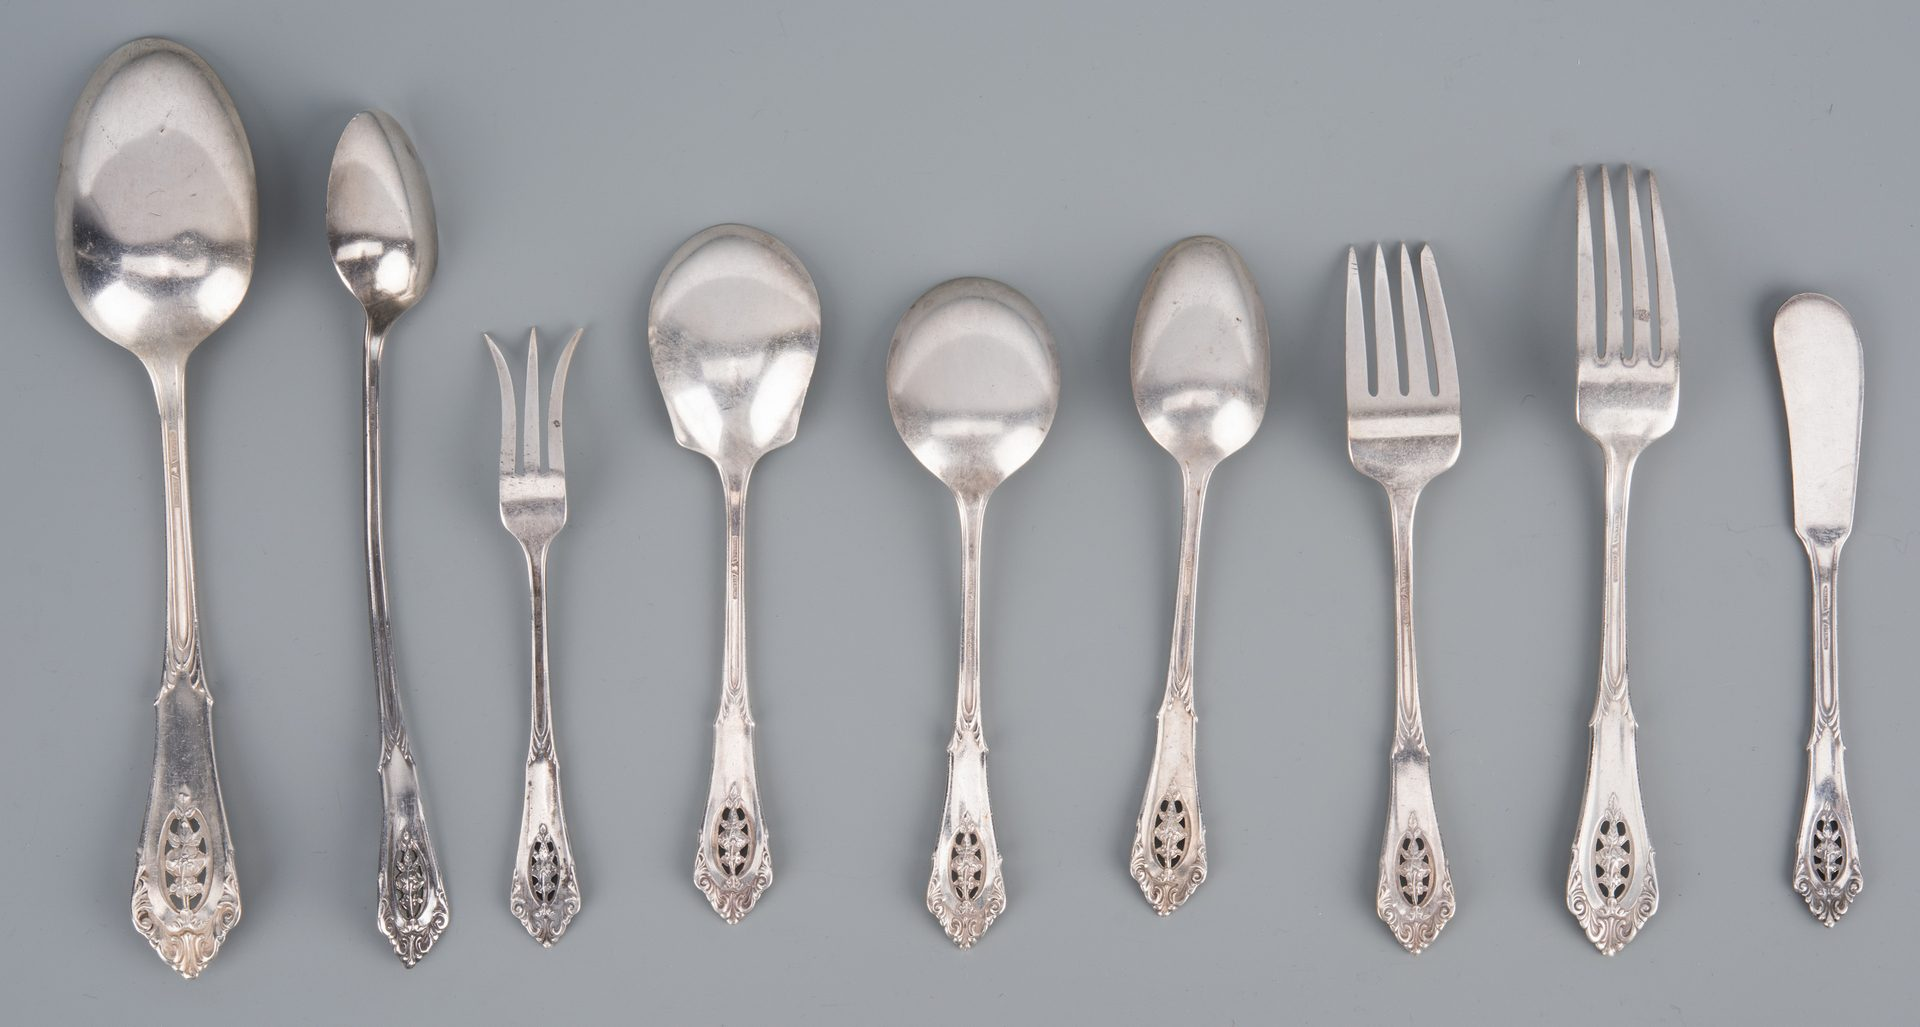 Lot 915 Wallace Sterling Flatware Rose Point Pattern 61 Pcs